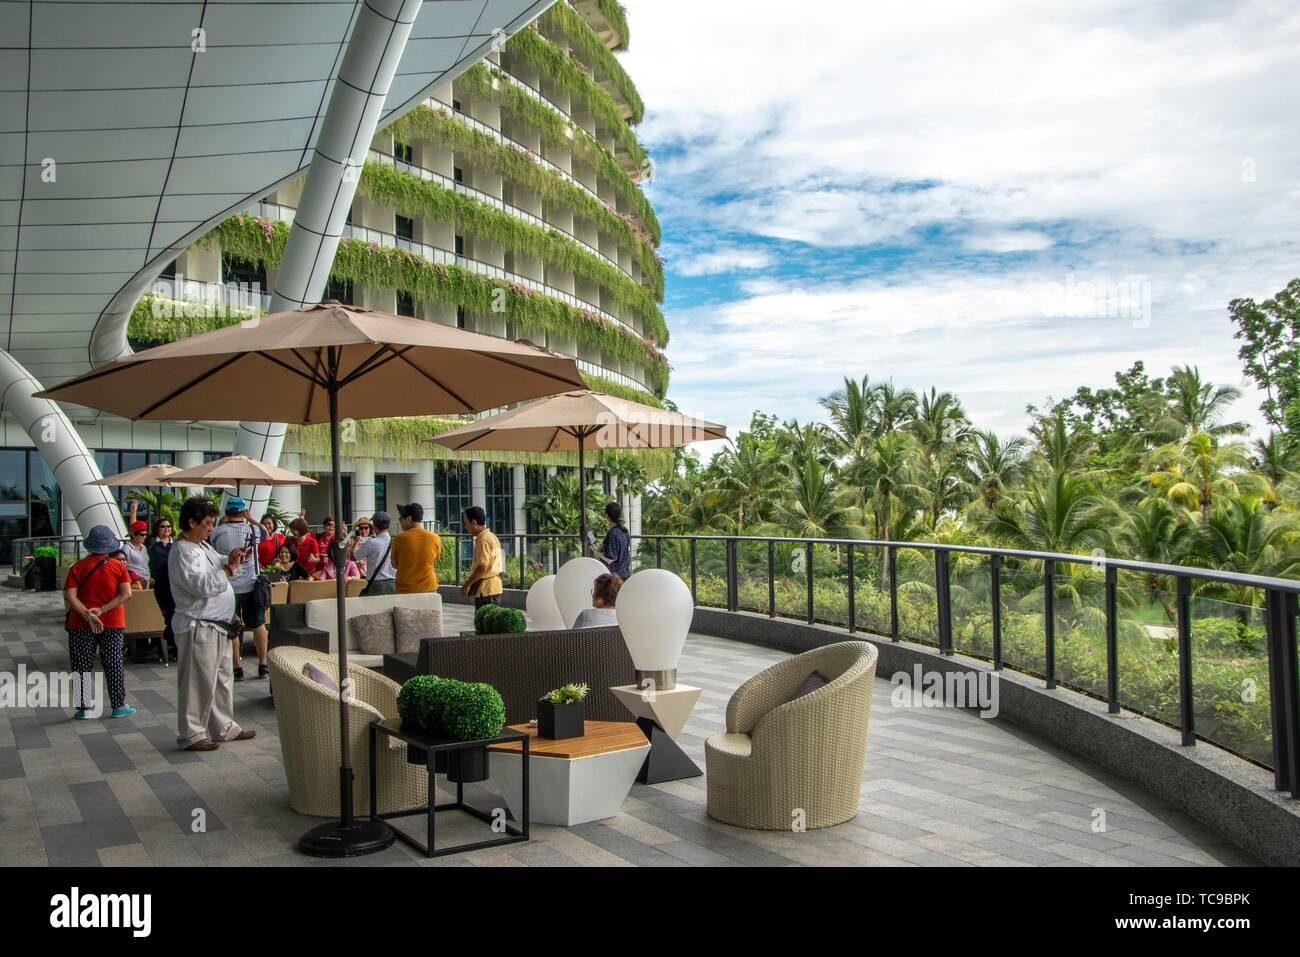 Forest City Phoenix International Marina Hotel Johor Bahru Malaysia Stock Photo Alamy